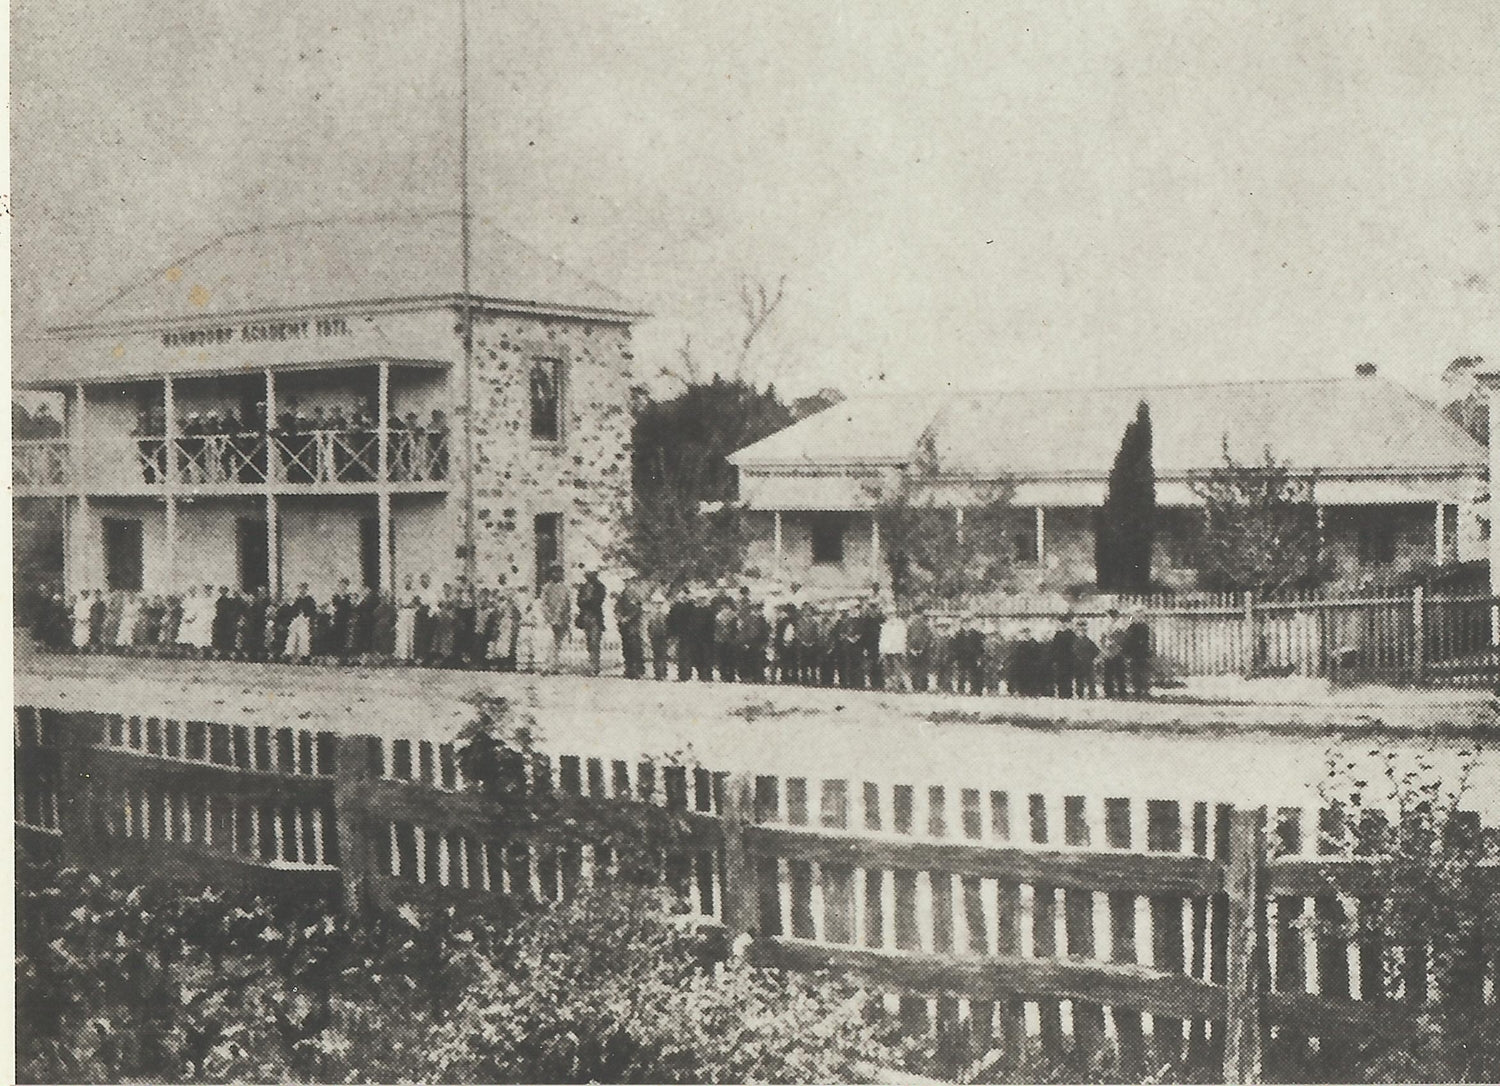 Hahndorf in the 1900's